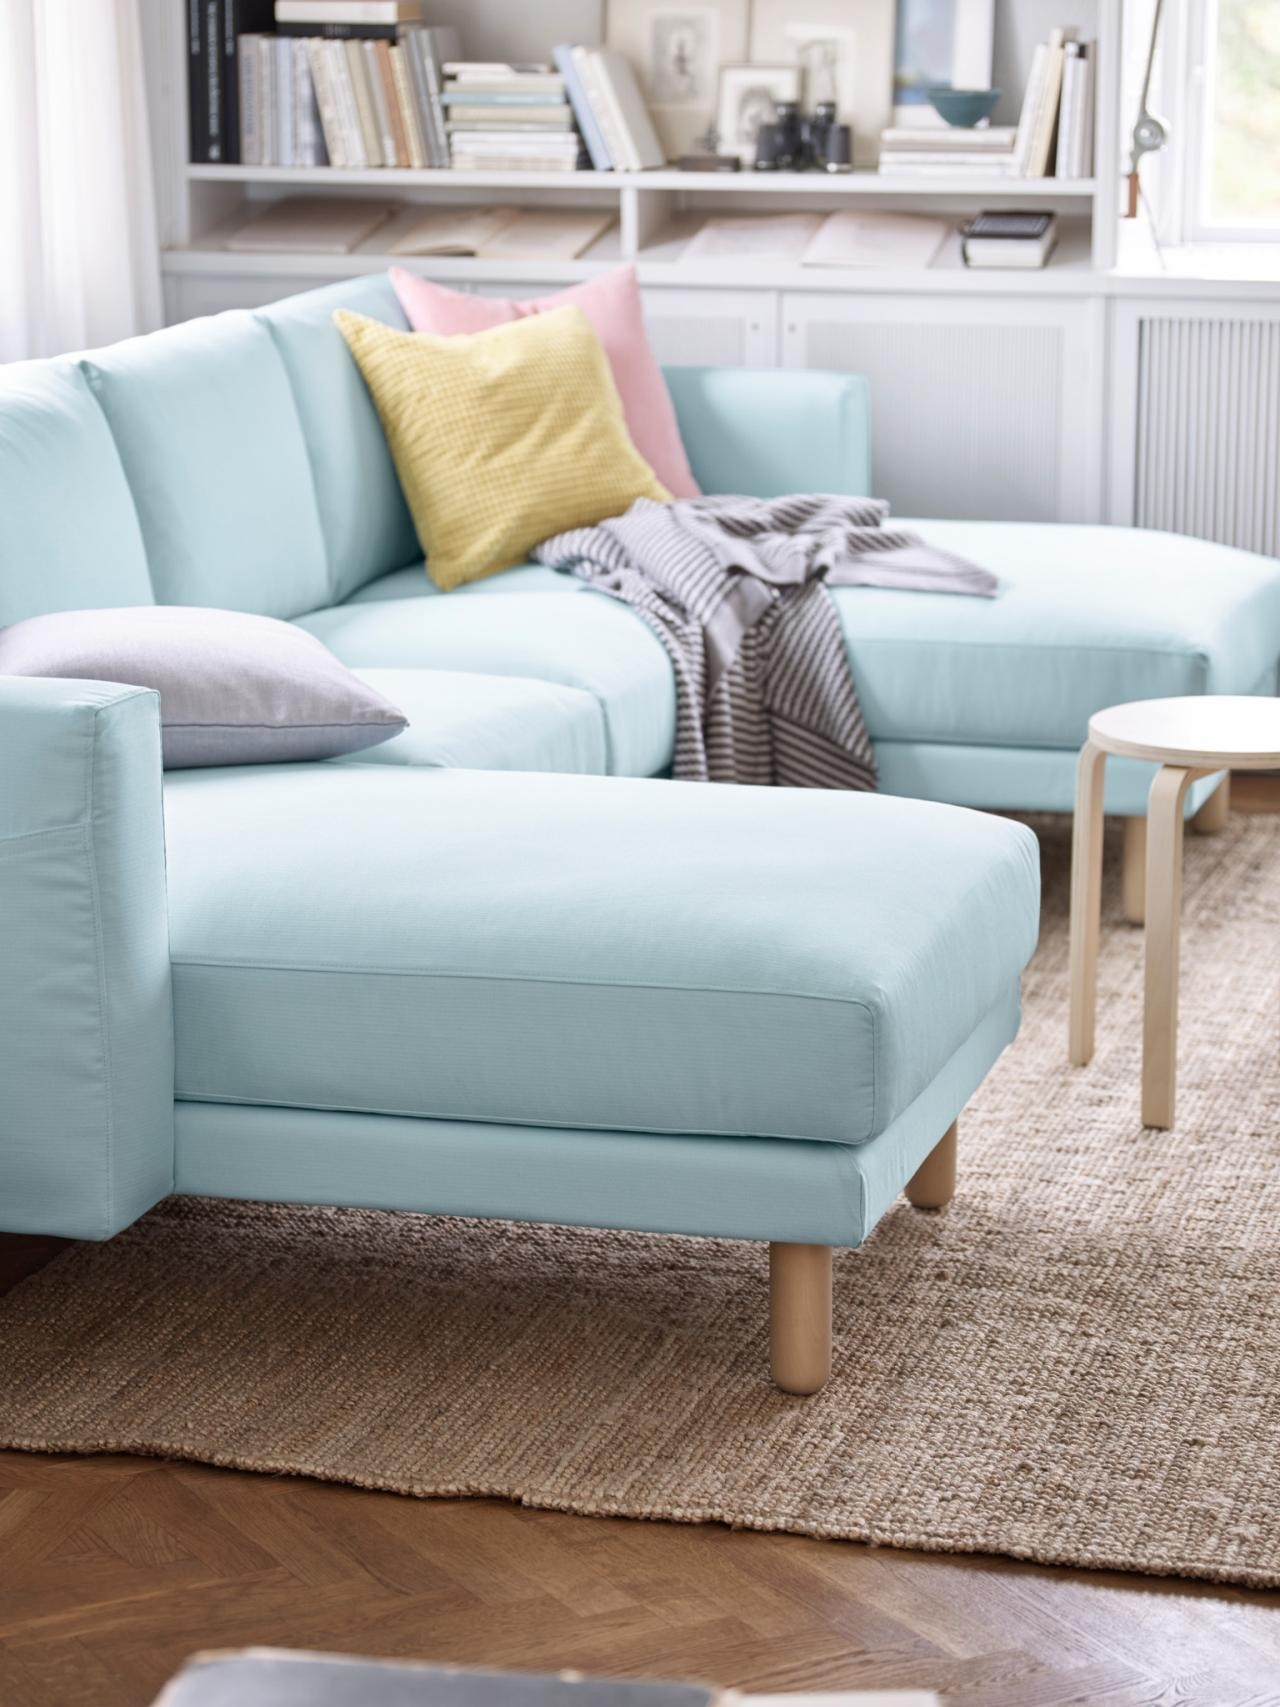 5 Apartment Sized Sofas That Are Lifesavers | Hgtv's Decorating for Apartment Sofas (Image 1 of 10)